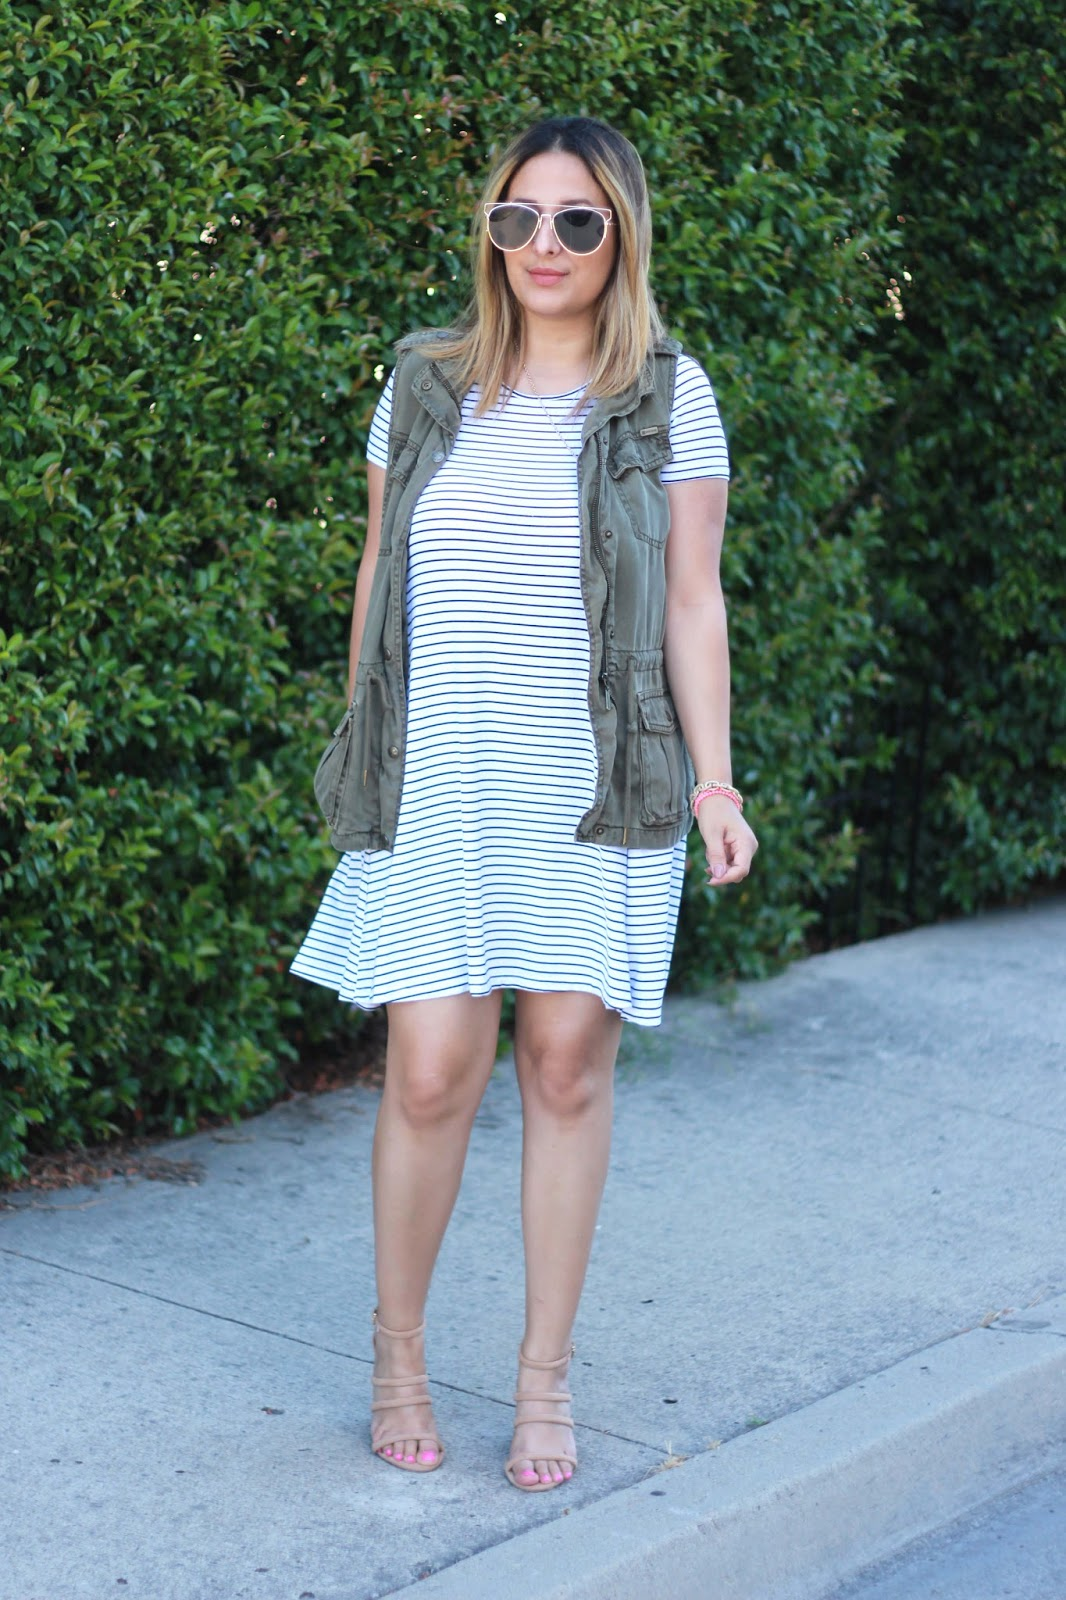 Street style tip of the day: Swing dresses and summer